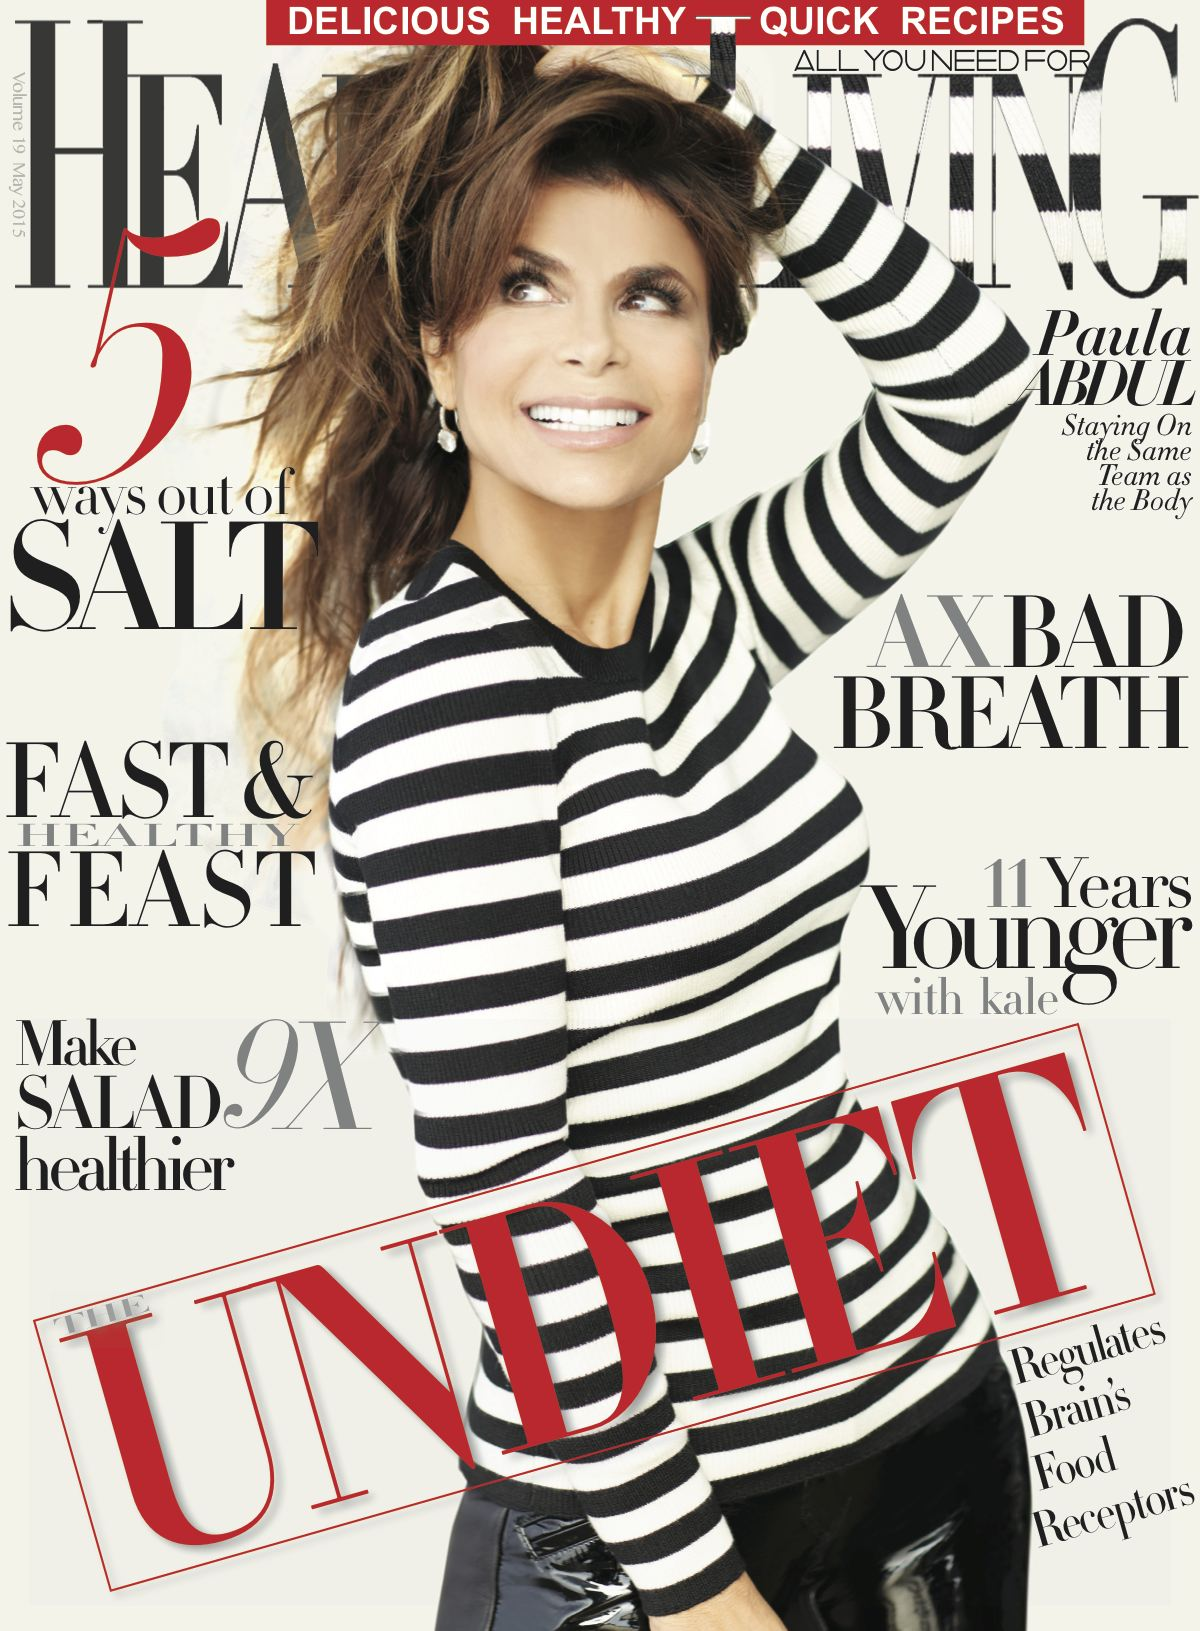 RT @USHealthyLivinG: If you ever want to be judged, then only by this fabulous and kindest ever judge! Our MAY cover girl is PAULA ABDUL!! …